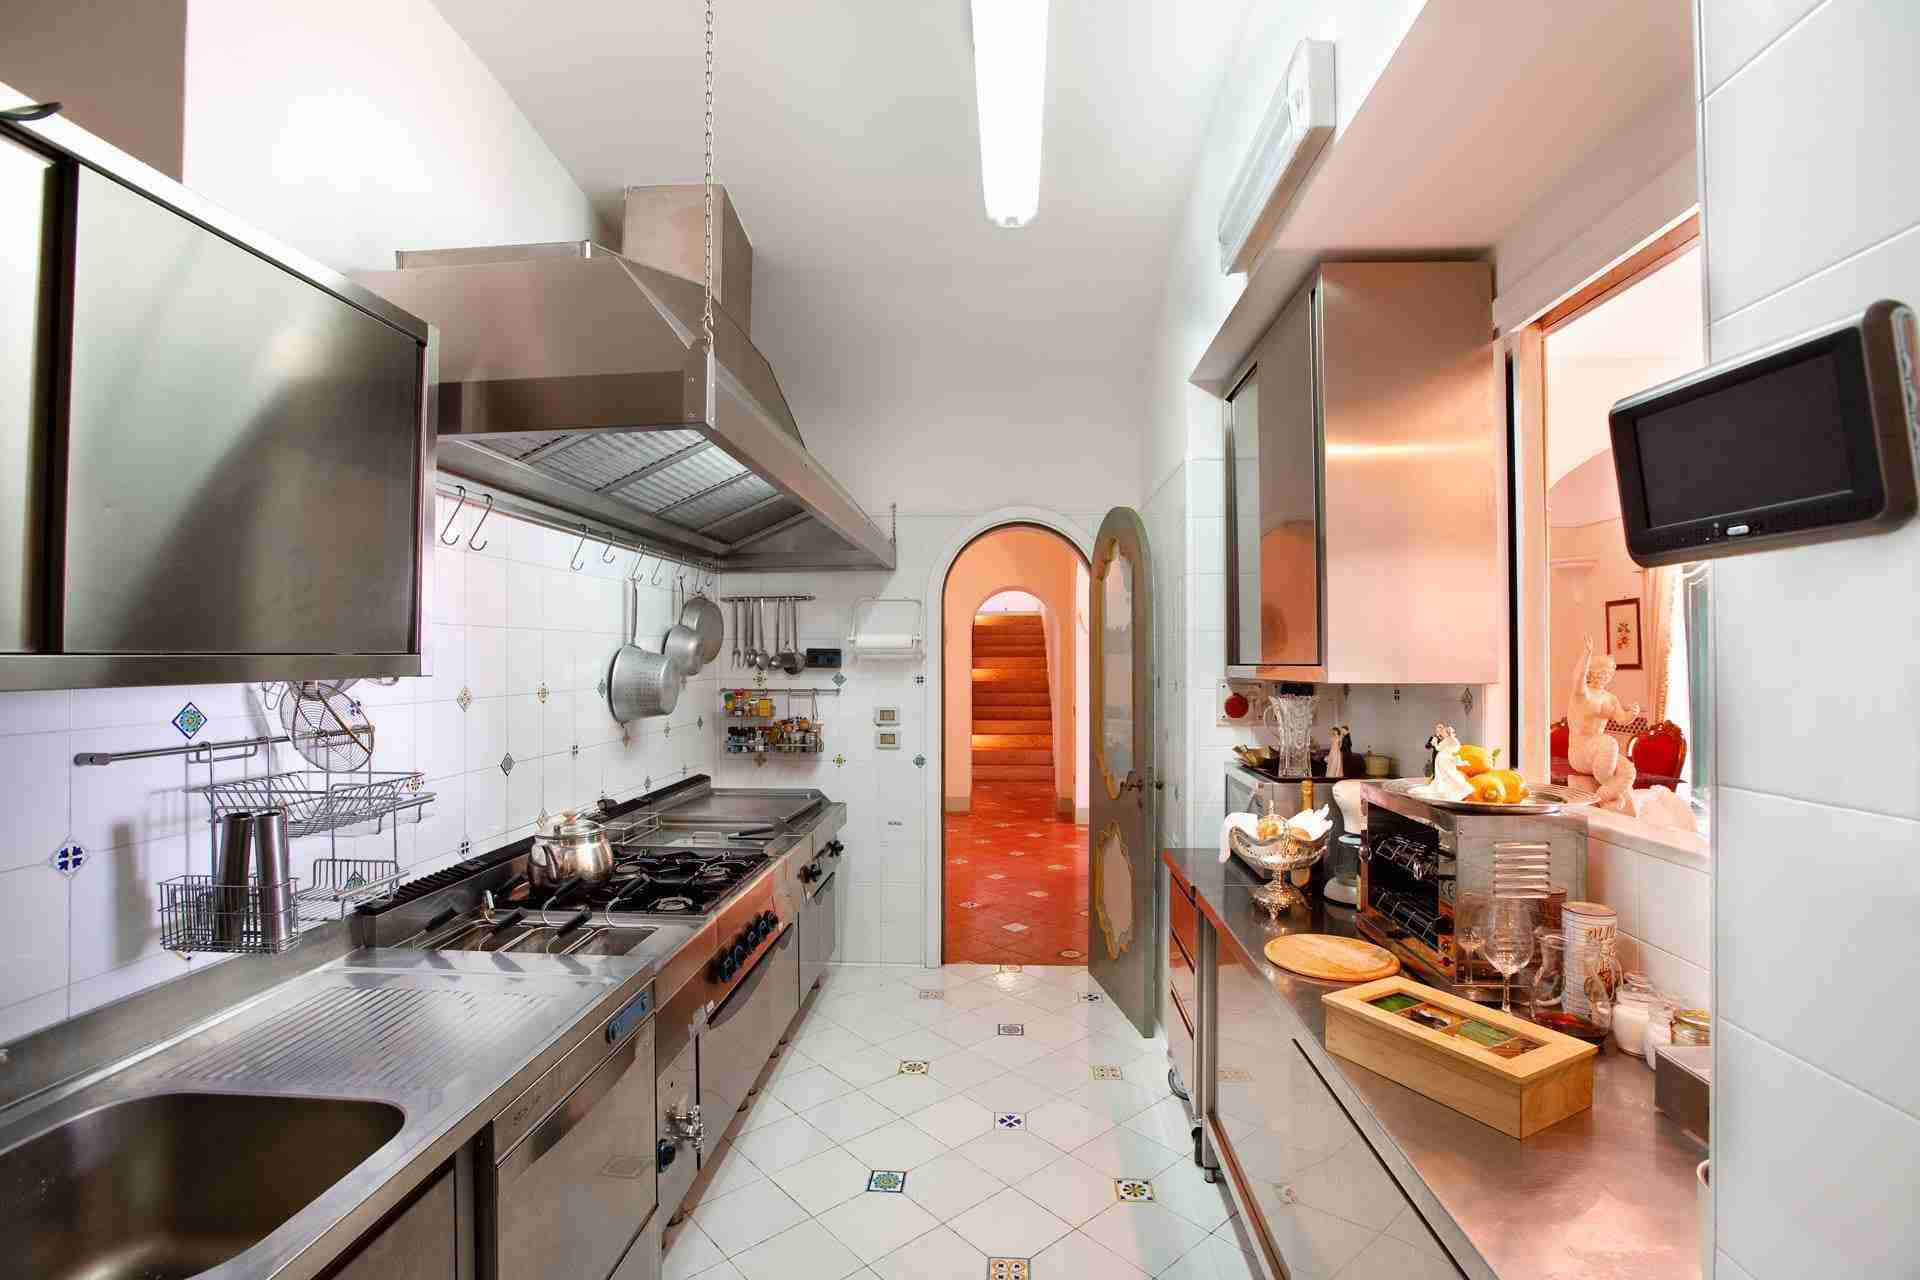 14 Positano kitchen